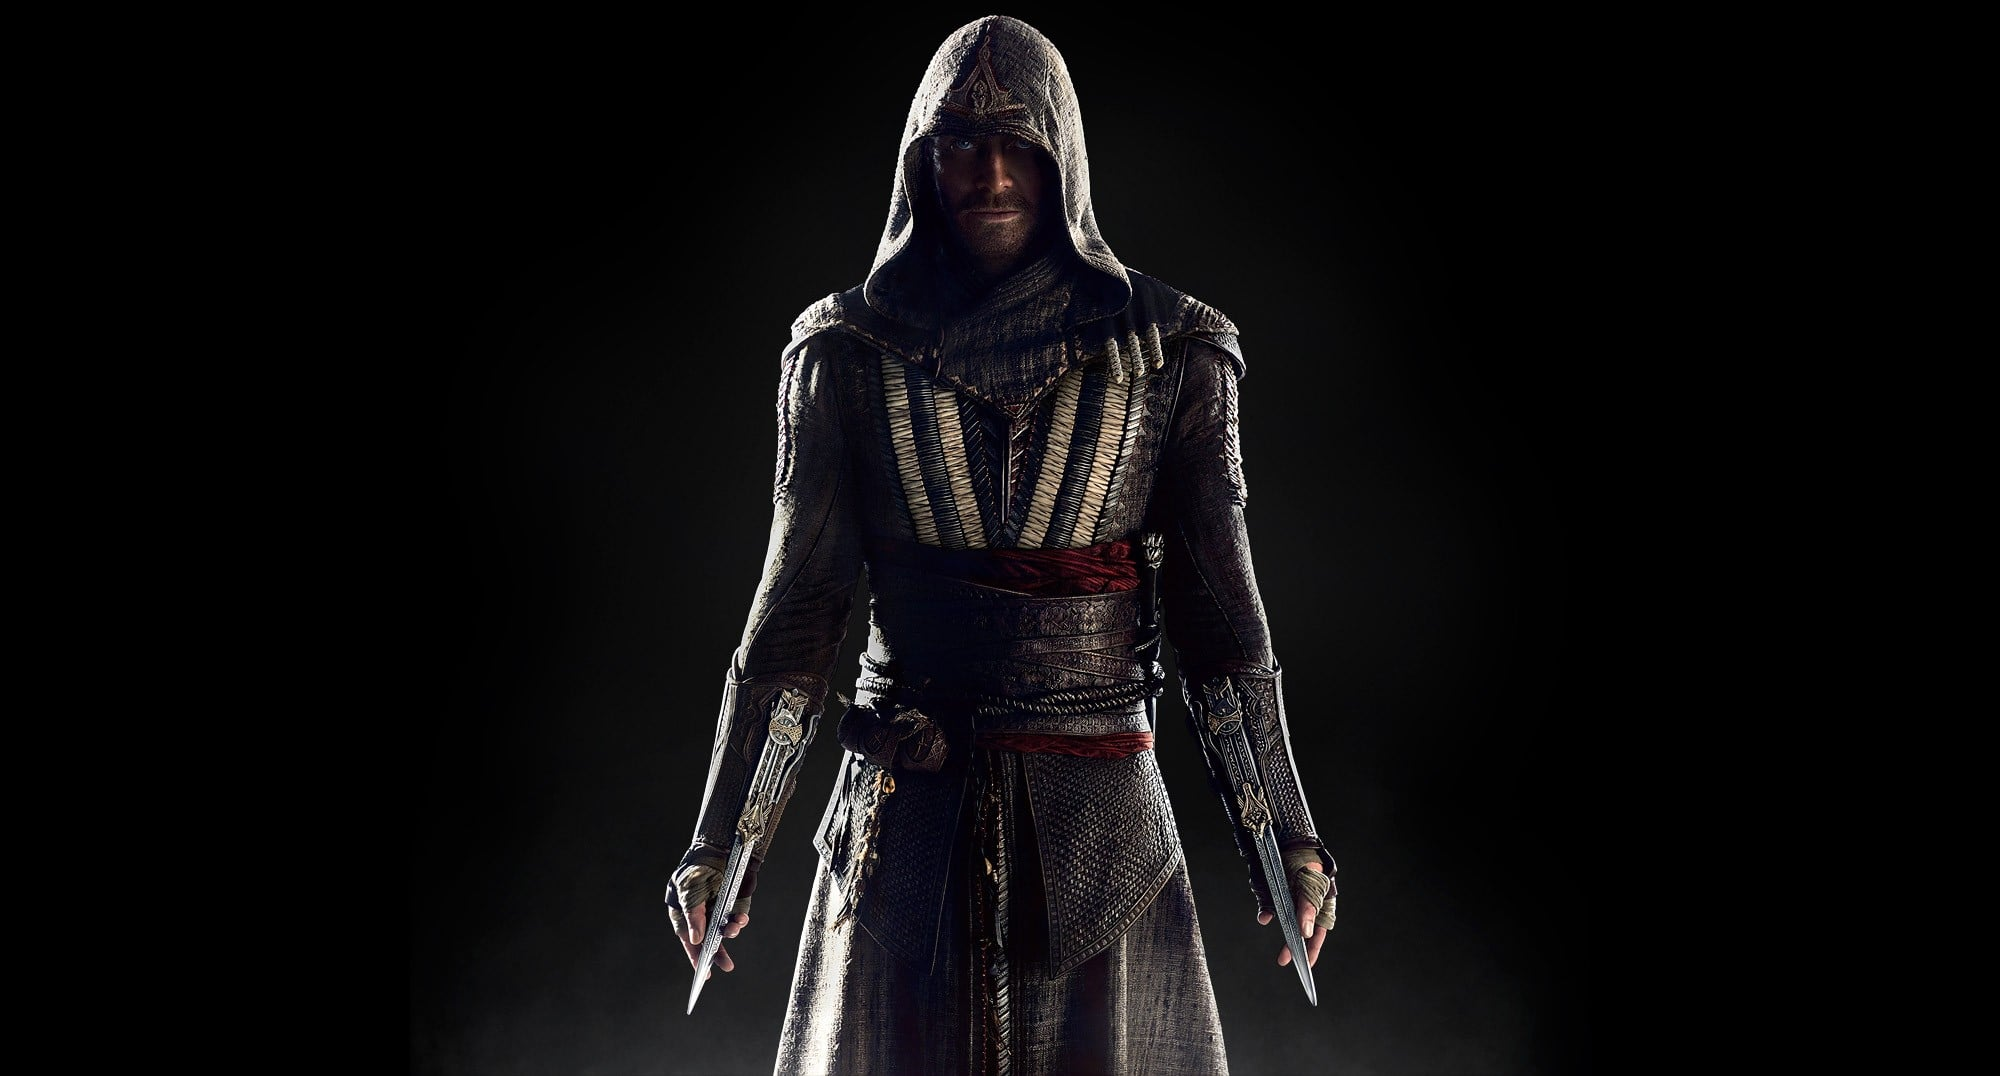 New Assassin's Creed Trailer Released